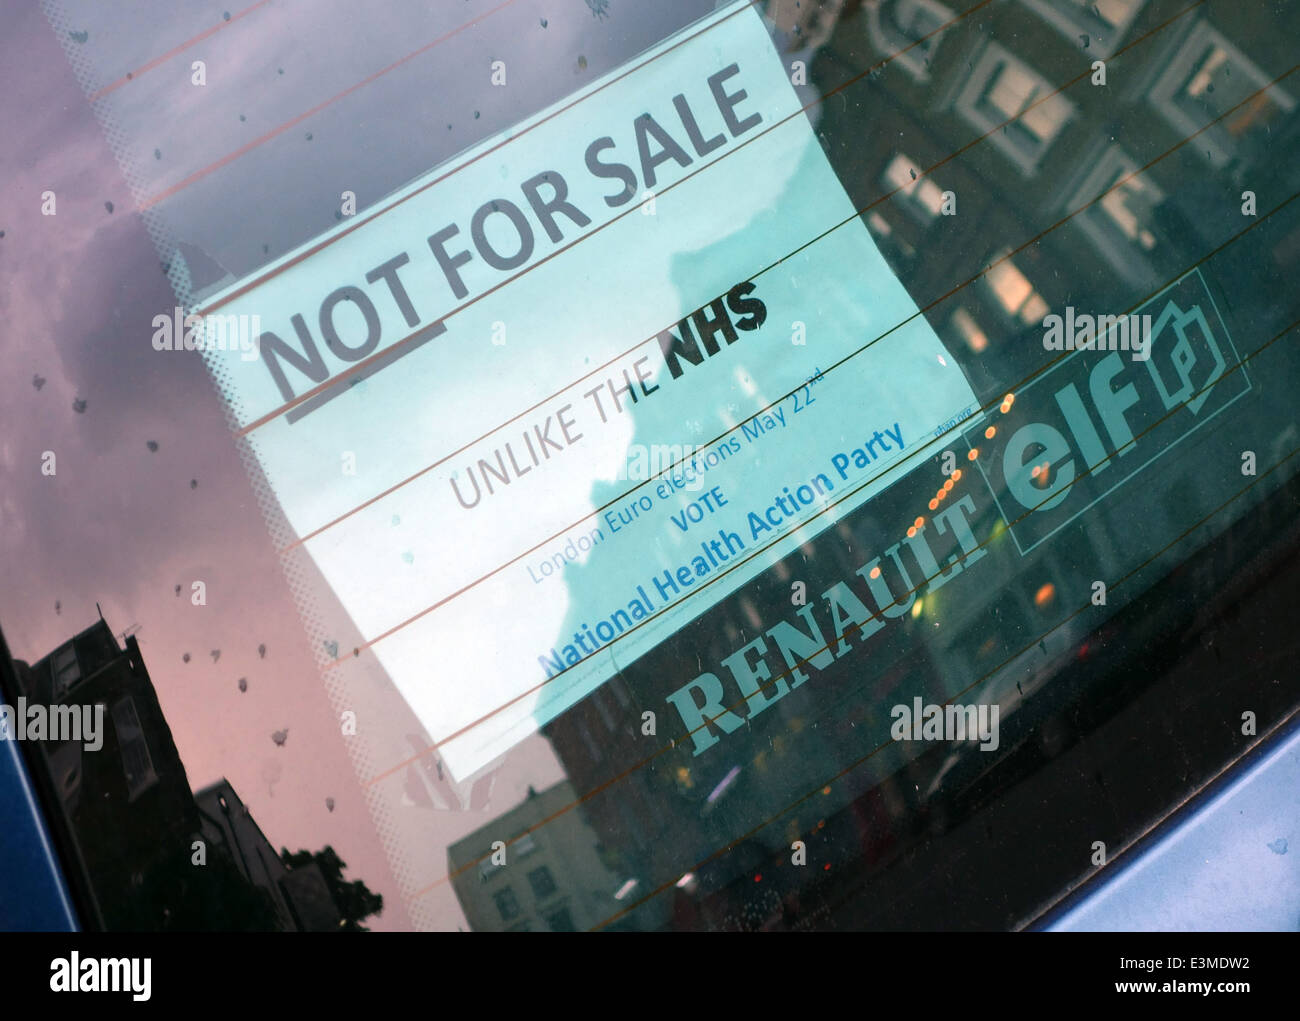 NHS not for sale sticker in car rear window, London - Stock Image